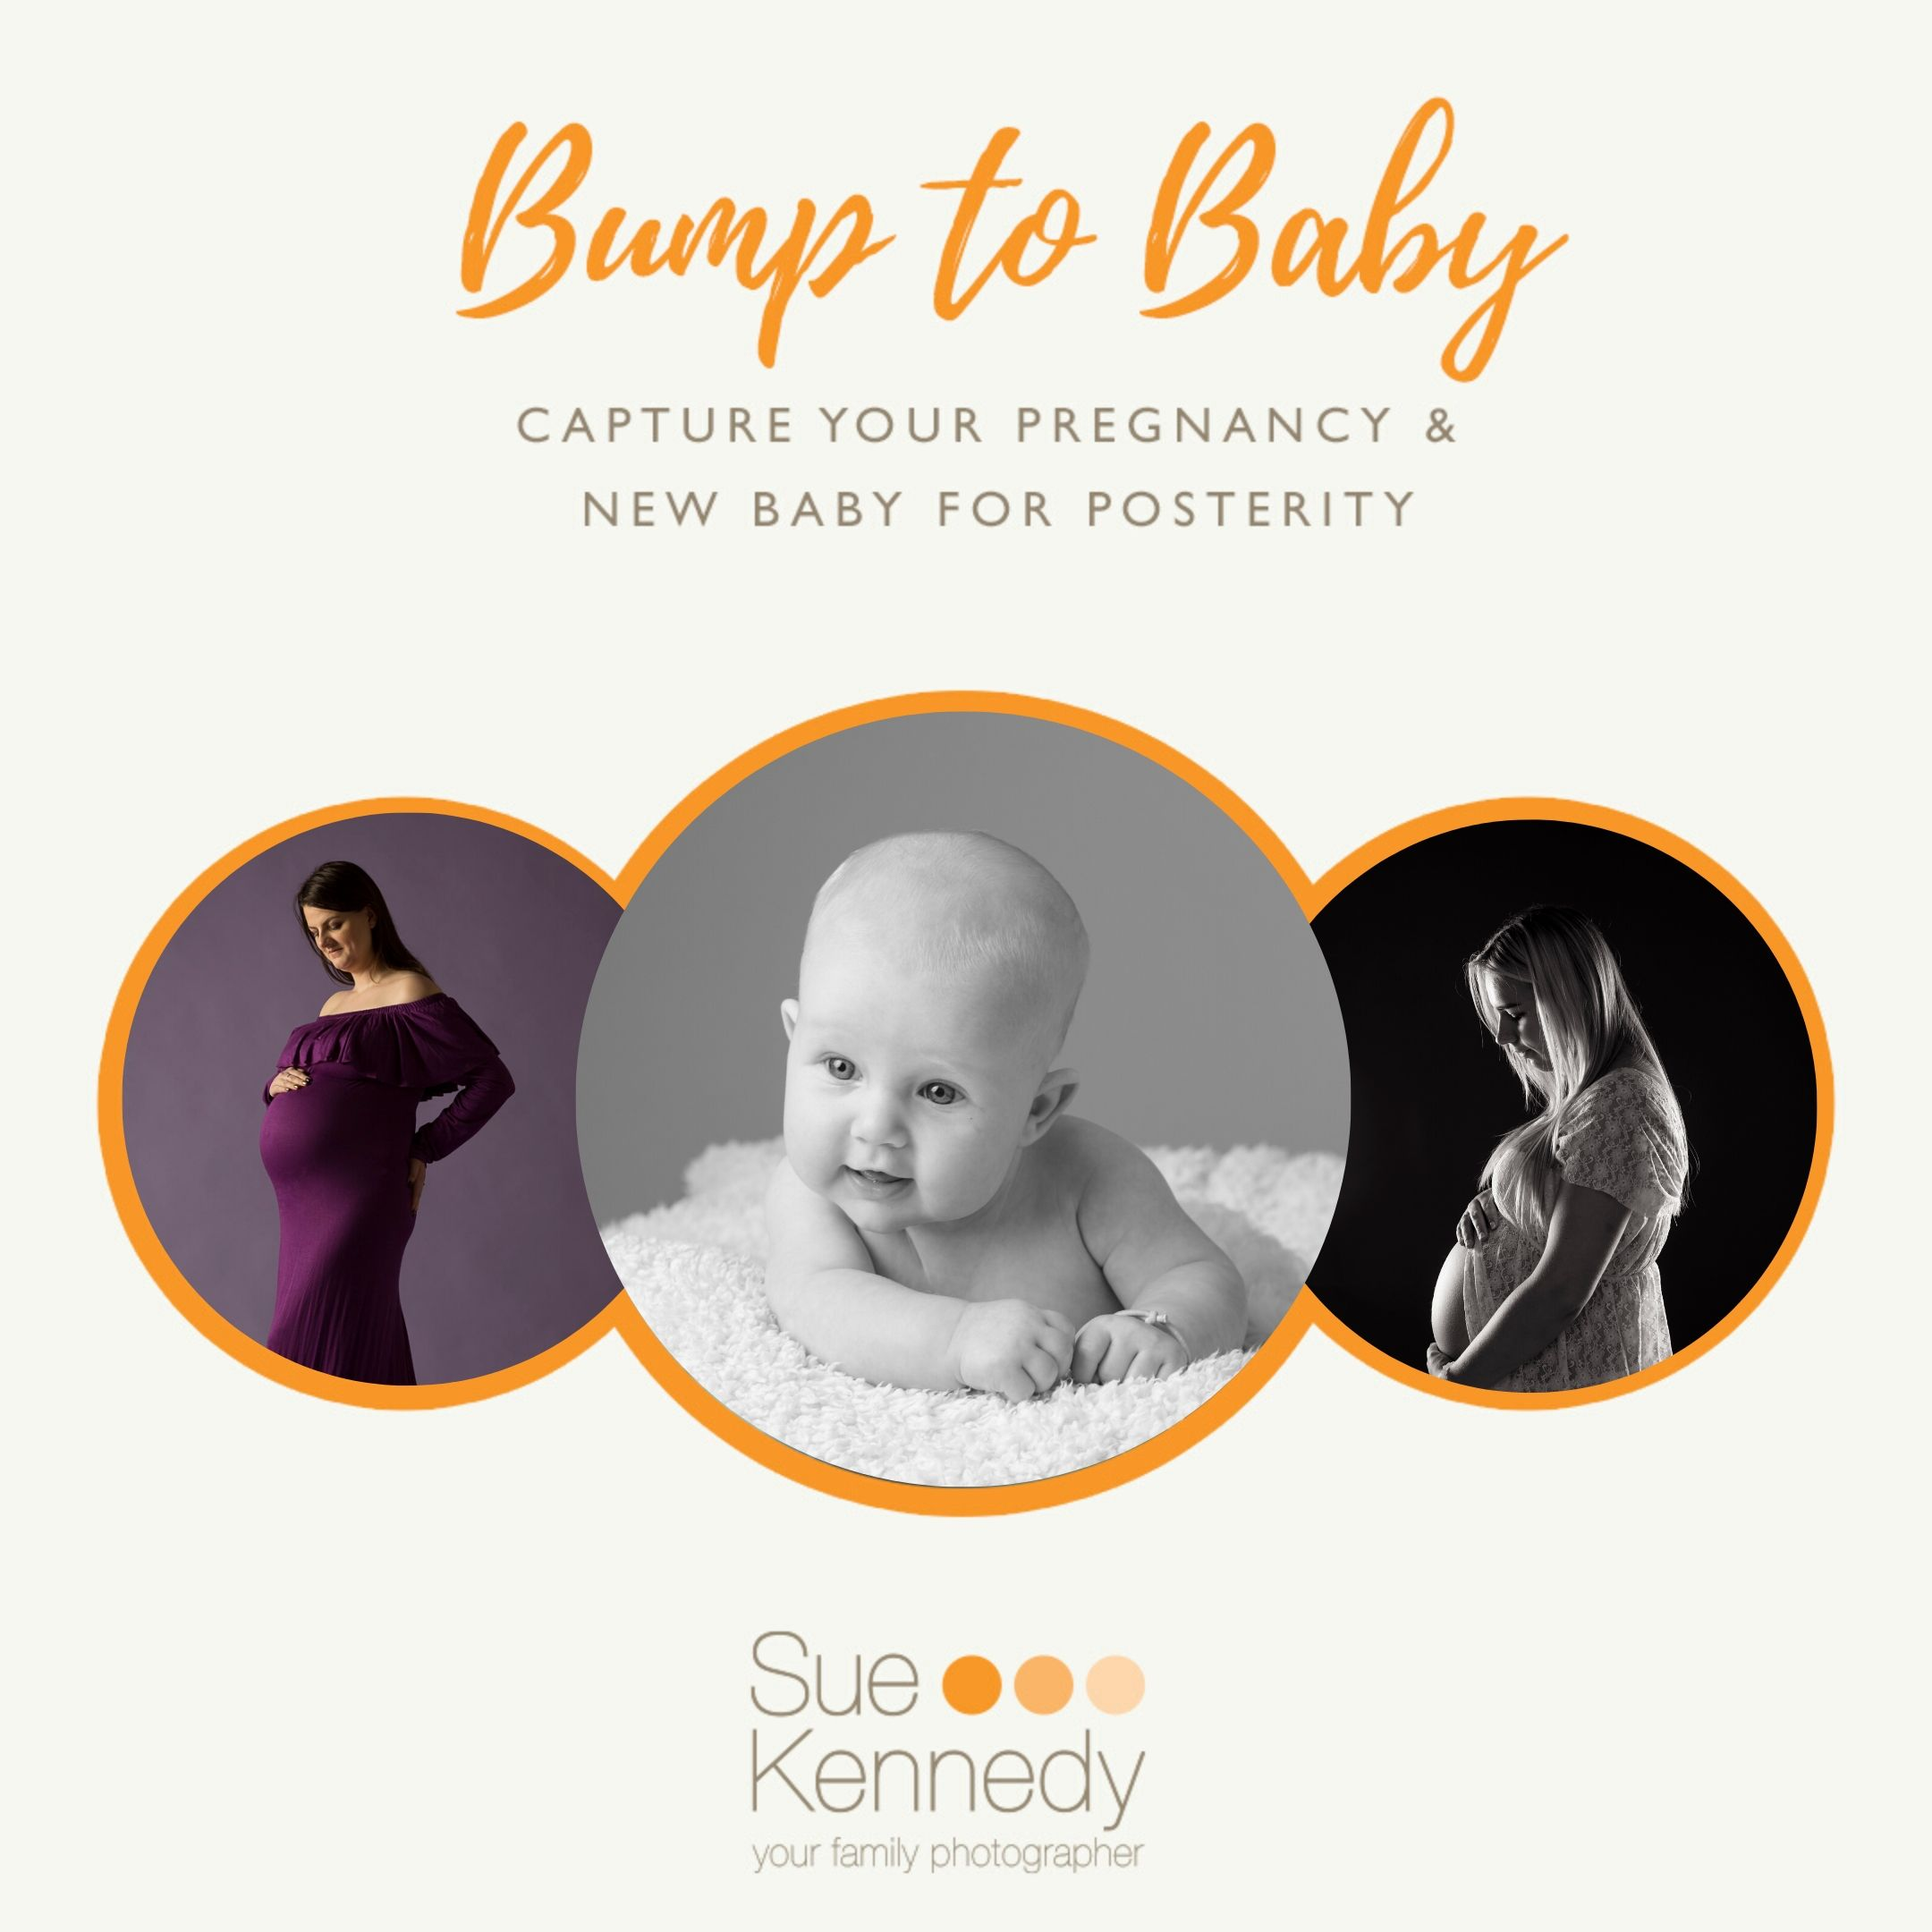 Bump to baby graphic with images